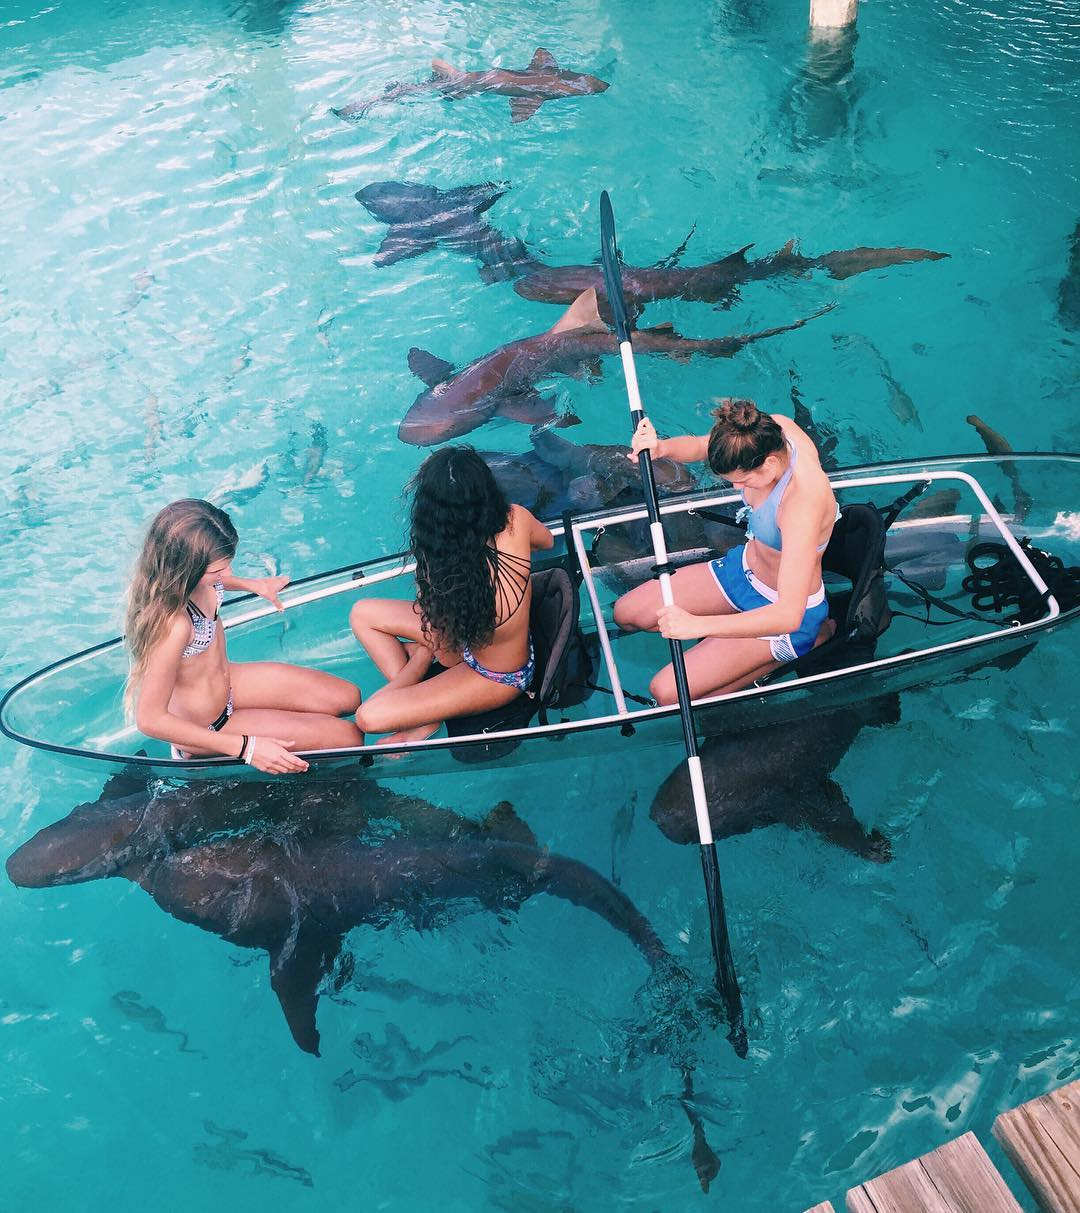 Bucket List: You must swim with these Sharks